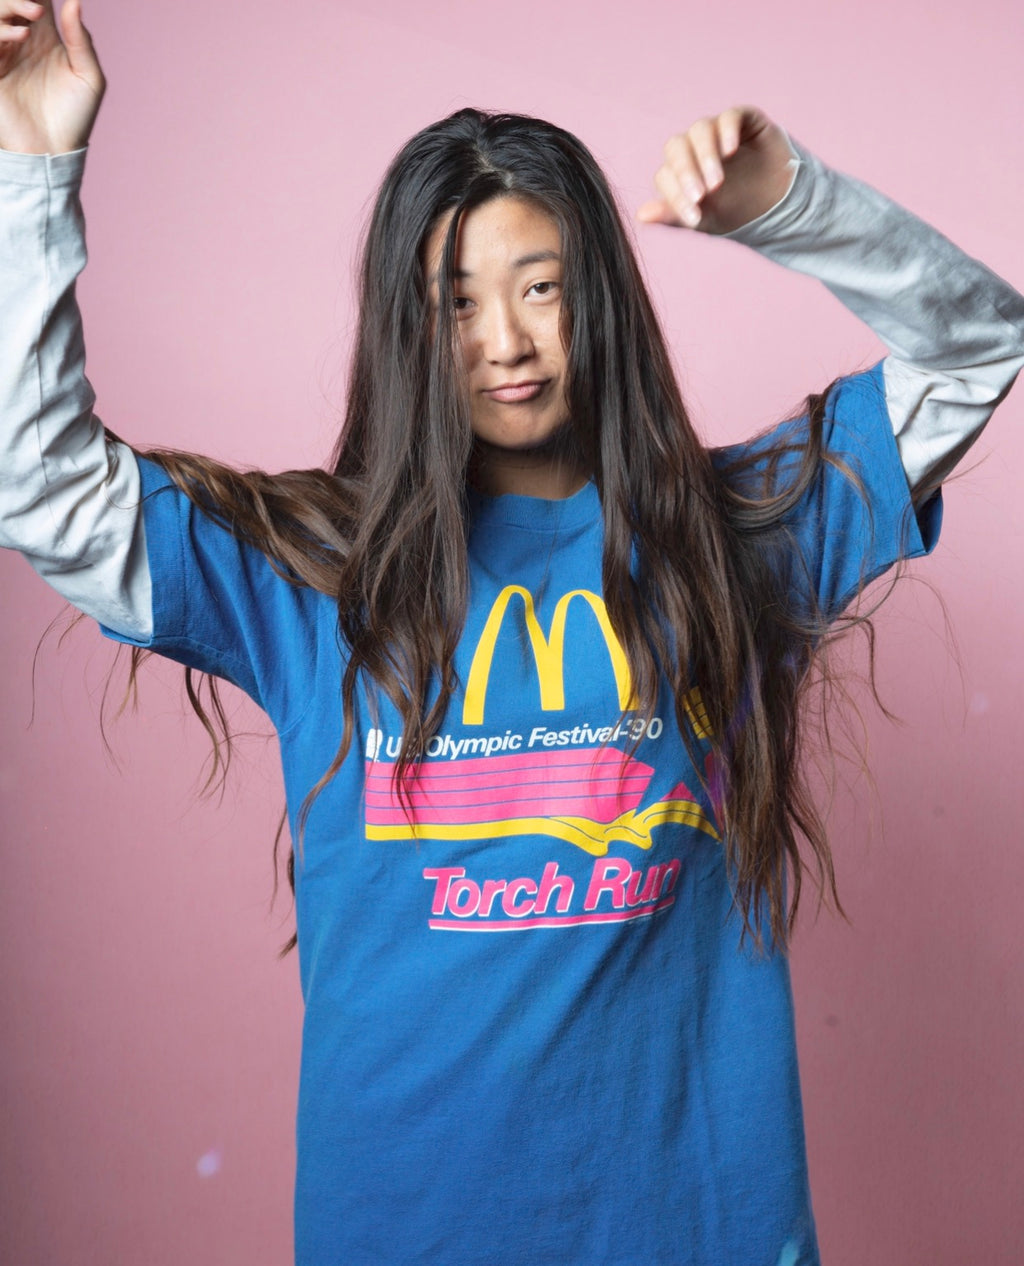 Vintage 90's McDonalds Torch Run T-Shirt - Men's M/L Woman's L